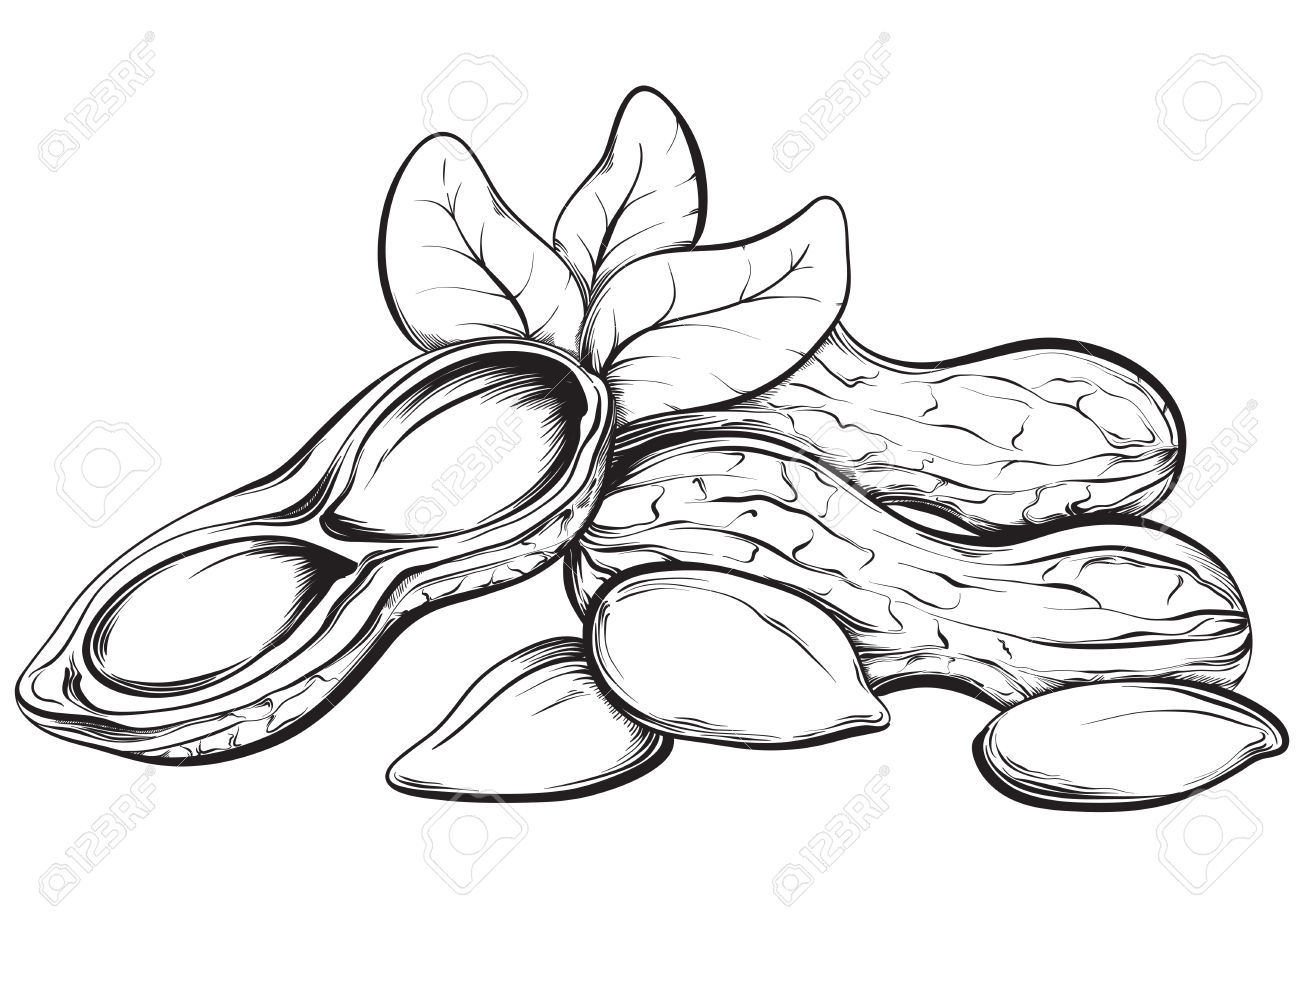 Peanut Outline Clipart Black And White 20 Free Cliparts